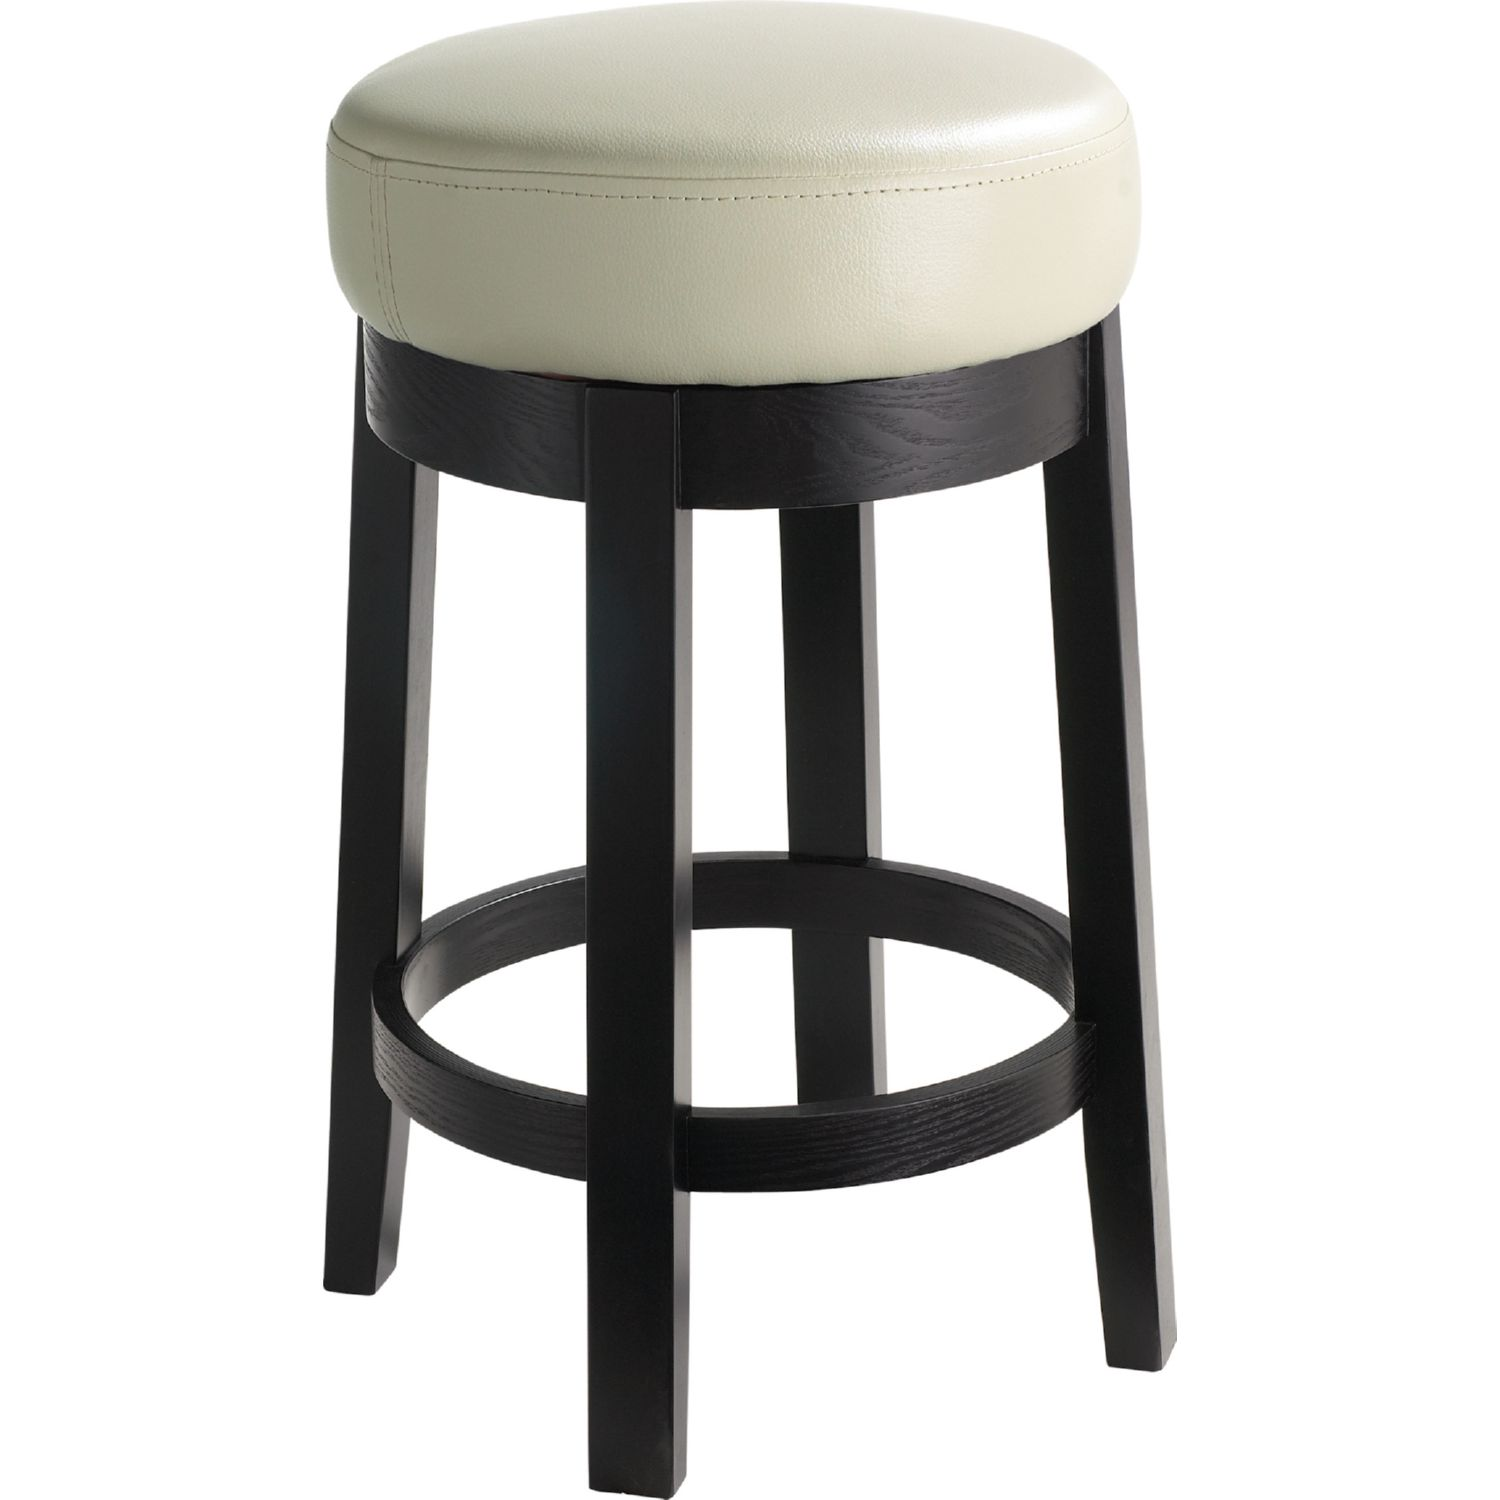 Sunpan 44923 Cedric Swivel Counter Height Stool In Cream